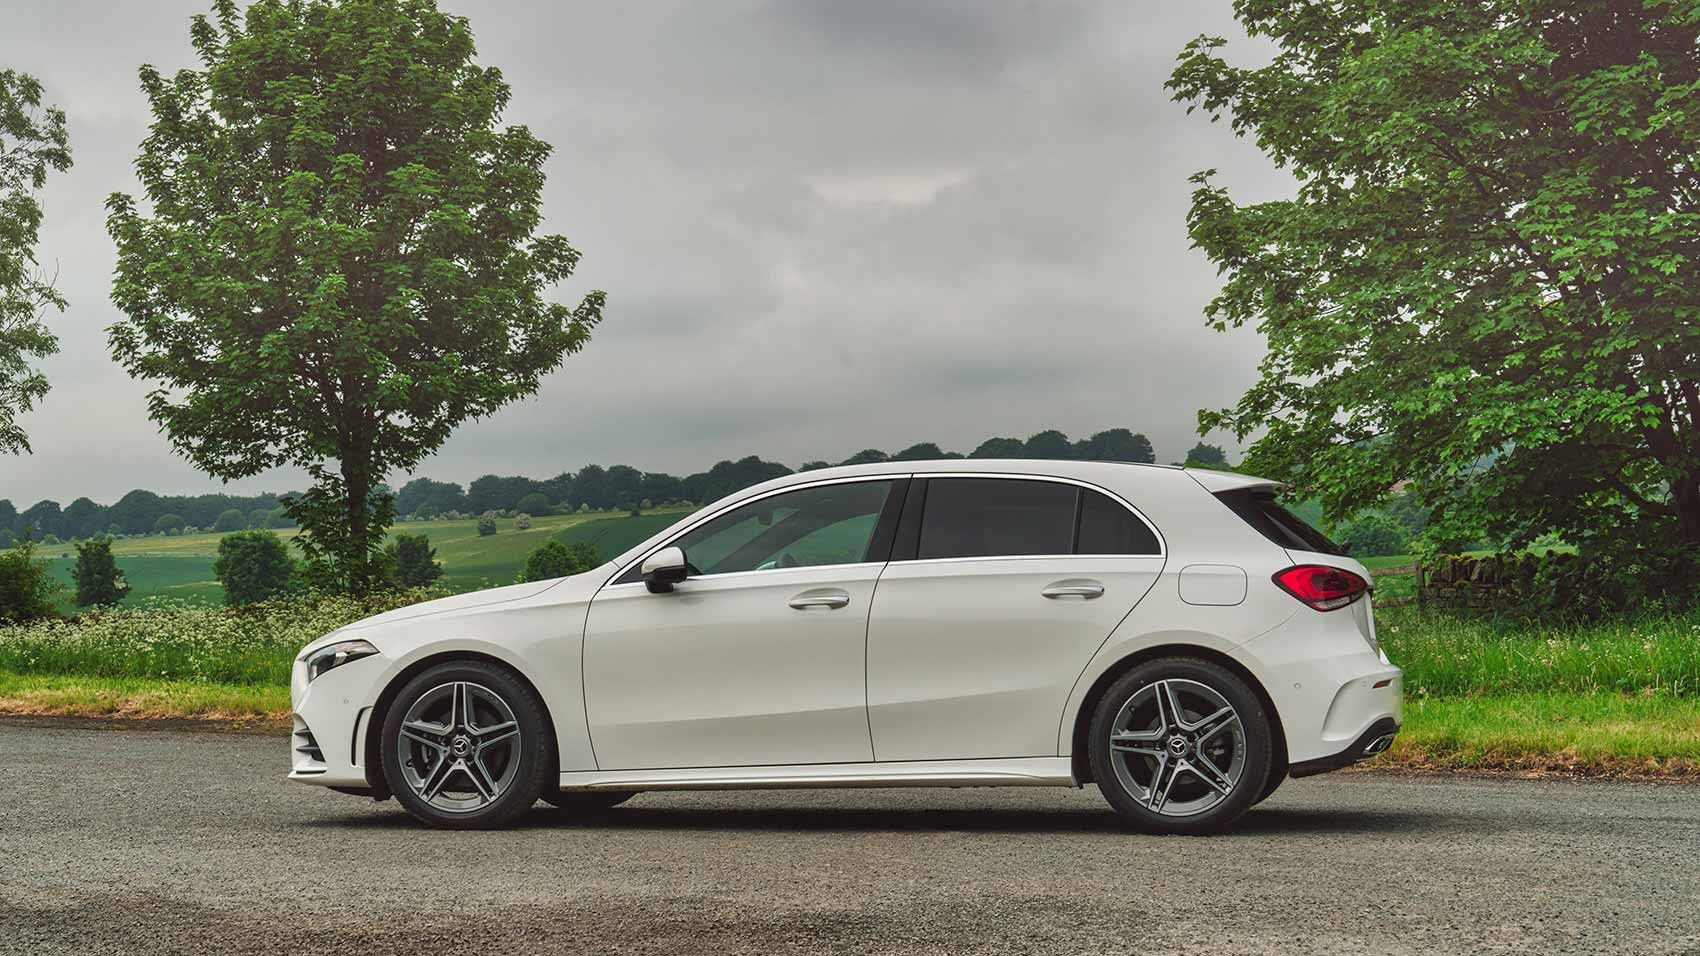 mercedes a class review every powertrain driven on uk roads car magazine. Black Bedroom Furniture Sets. Home Design Ideas